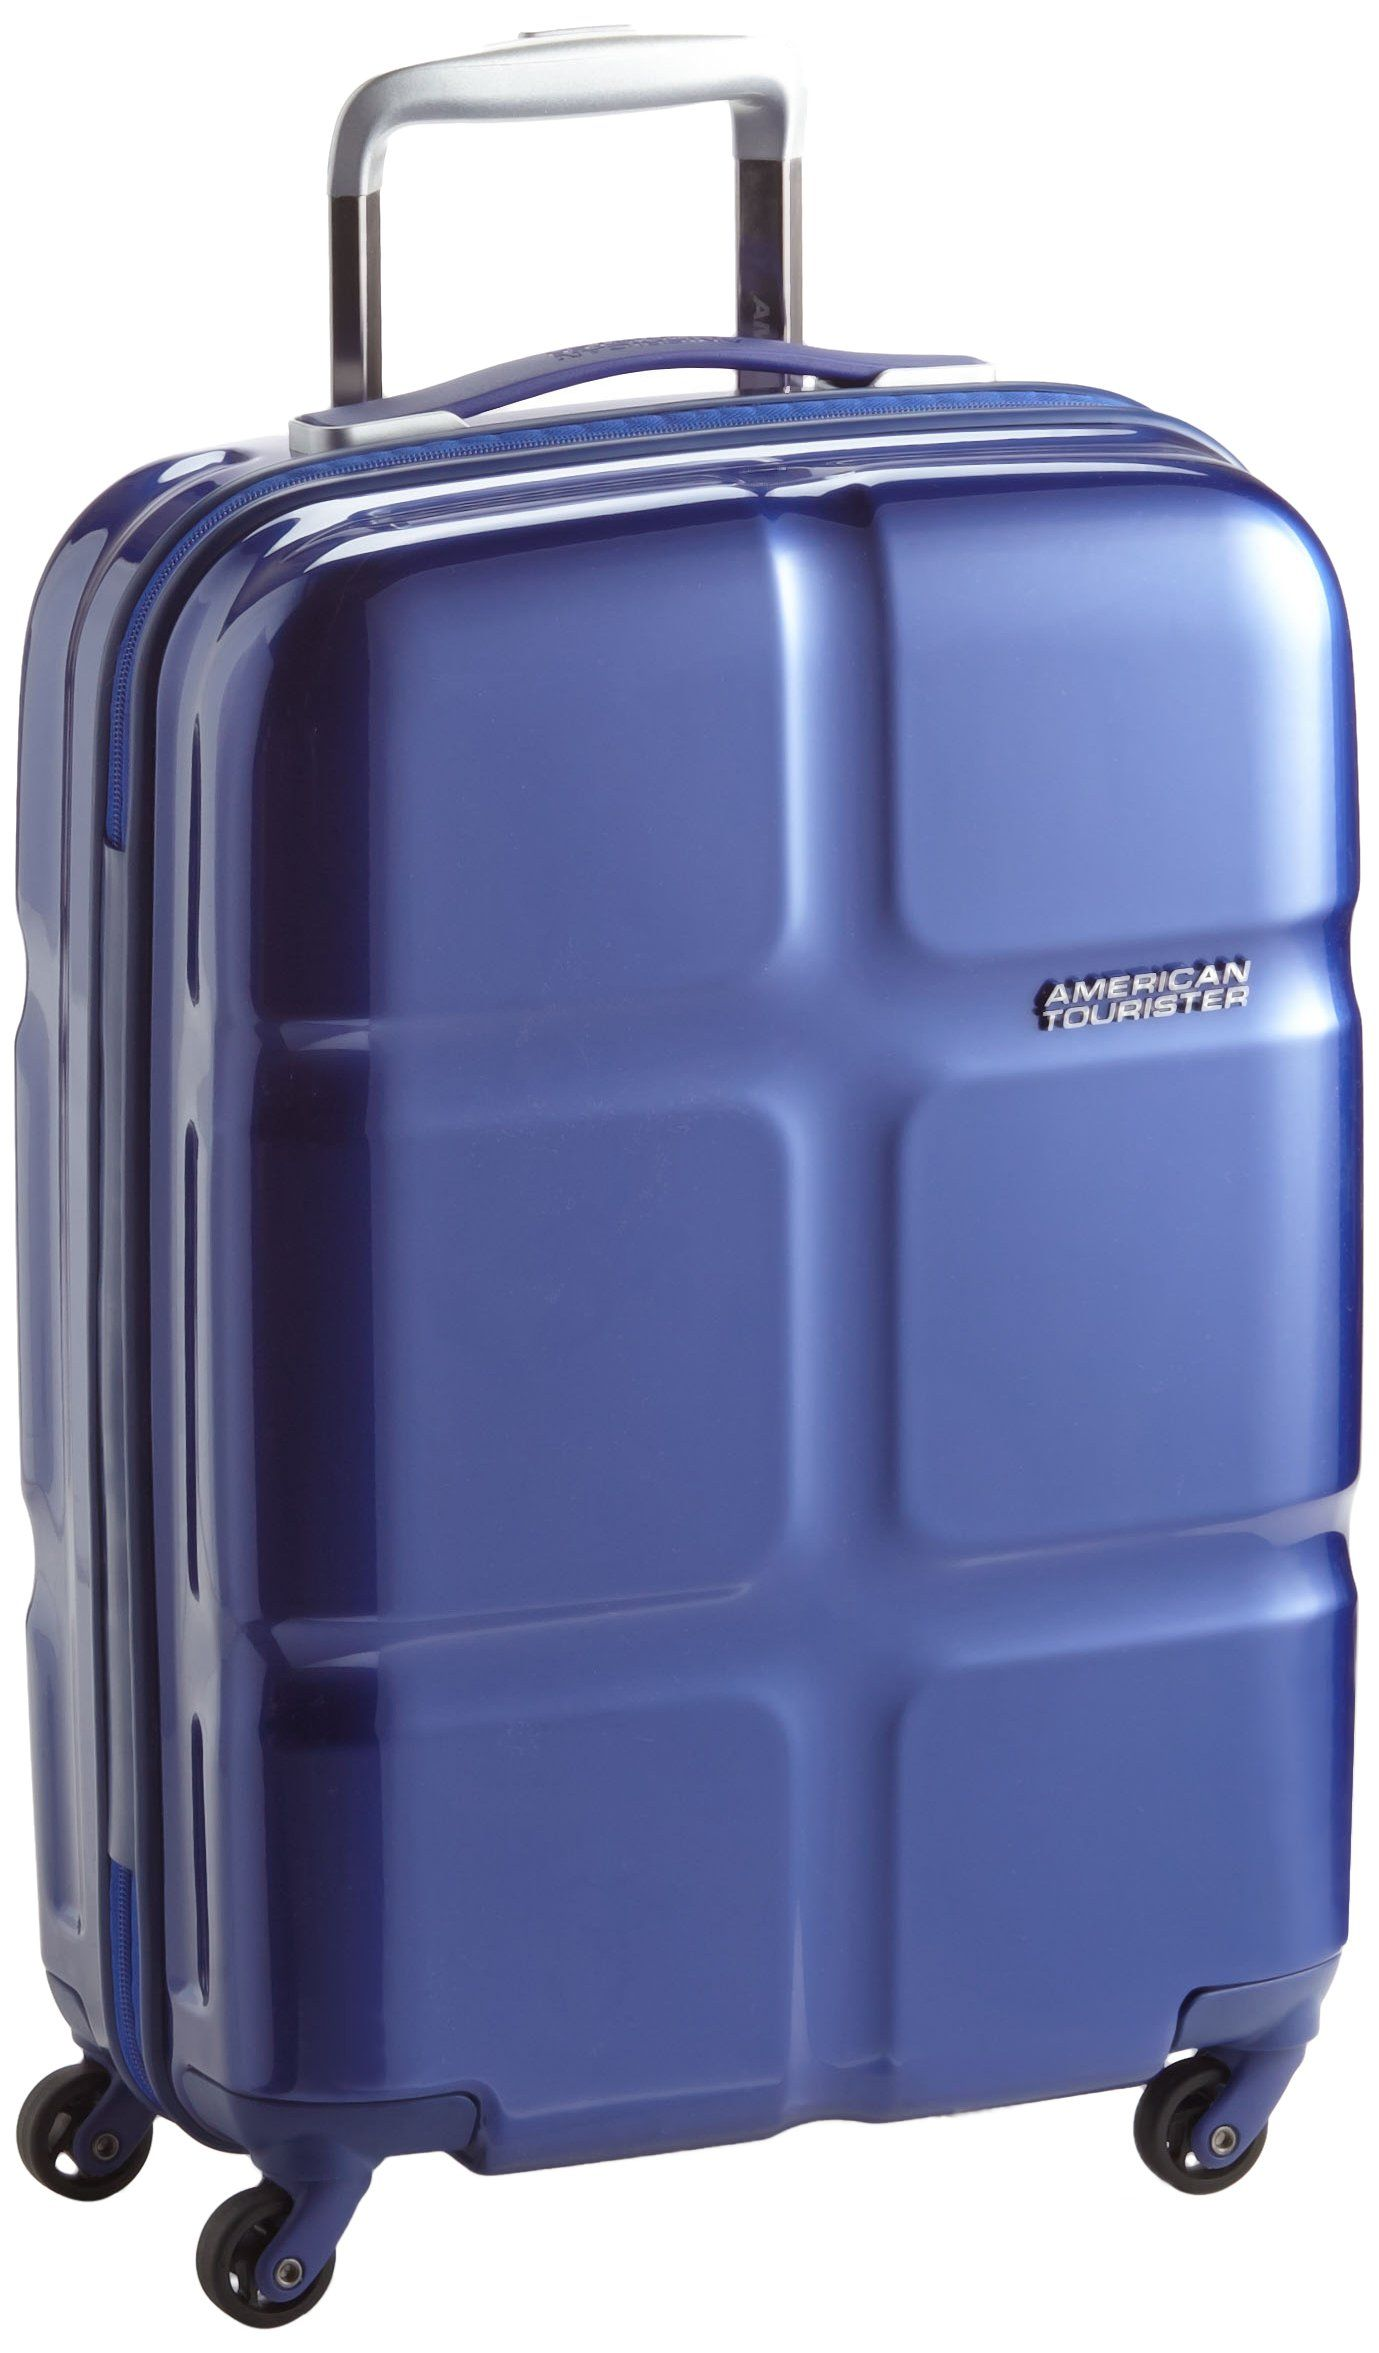 American Tourister Luggage Bags   ReGreen Springfield 522c5d9e20